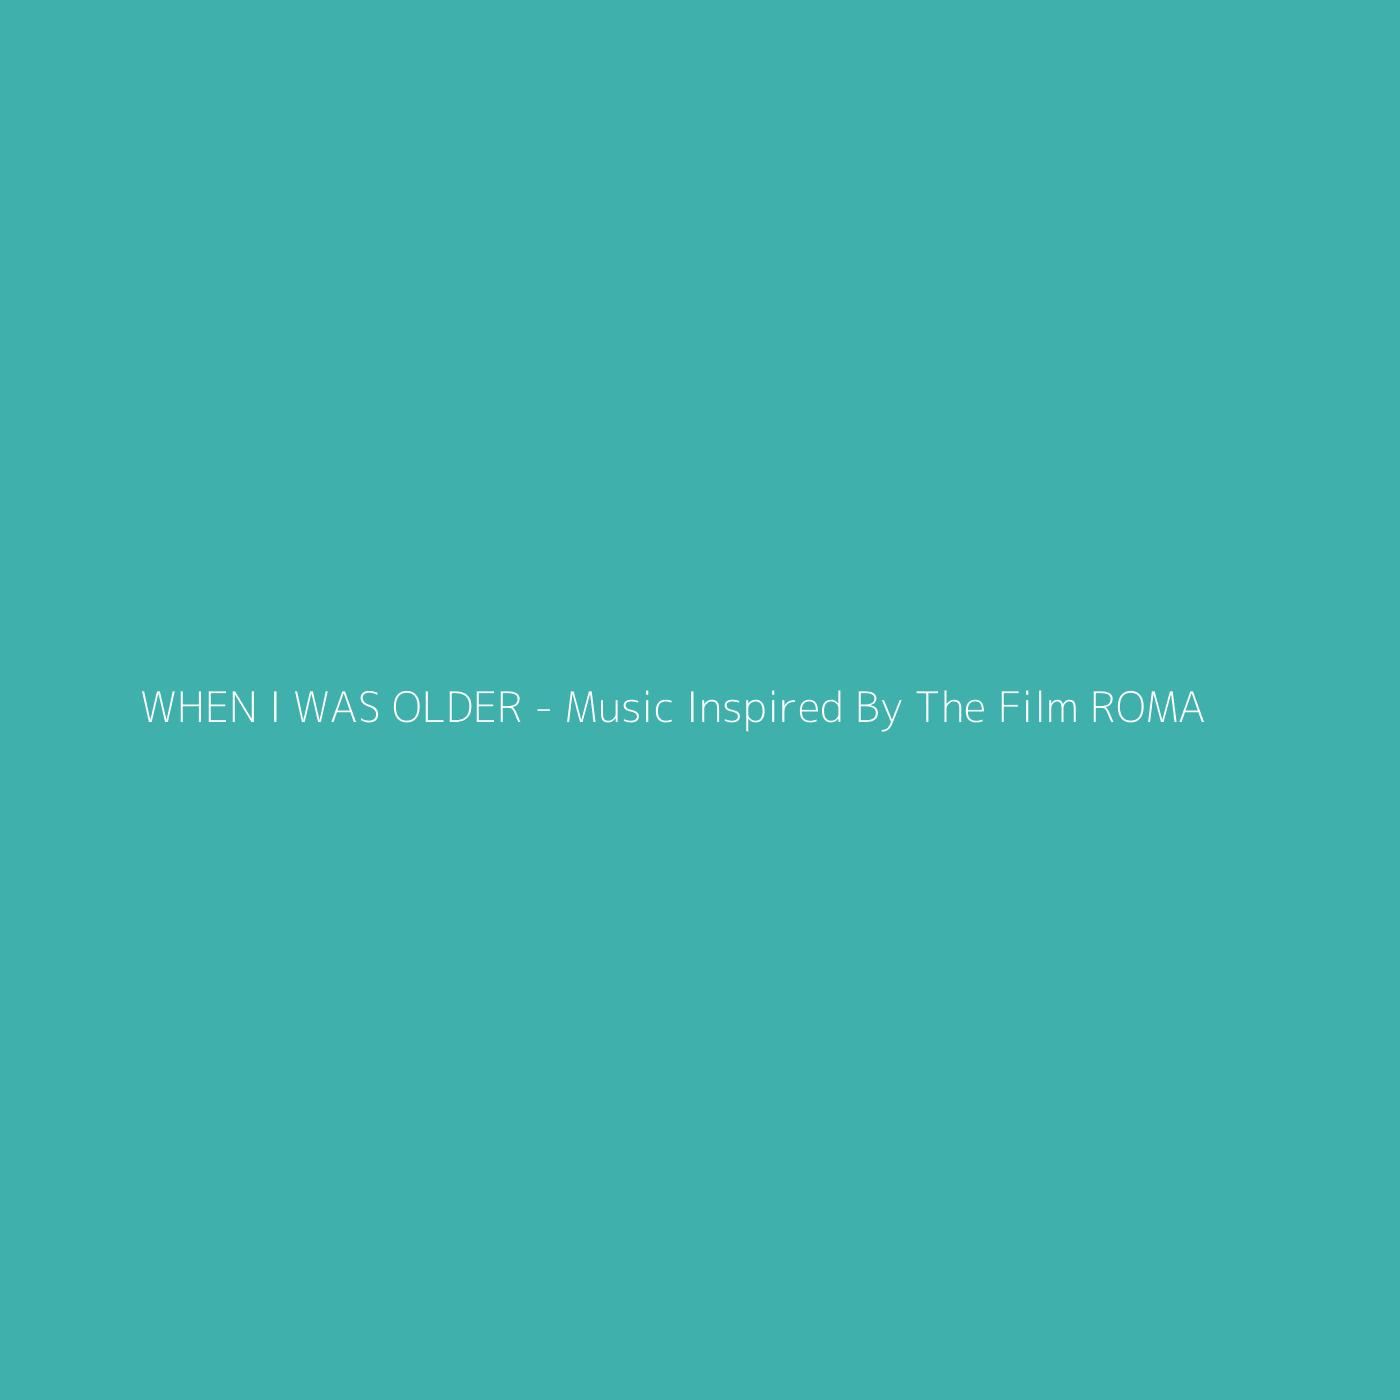 WHEN I WAS OLDER - Music Inspired By The Film ROMA – Billie Eilish